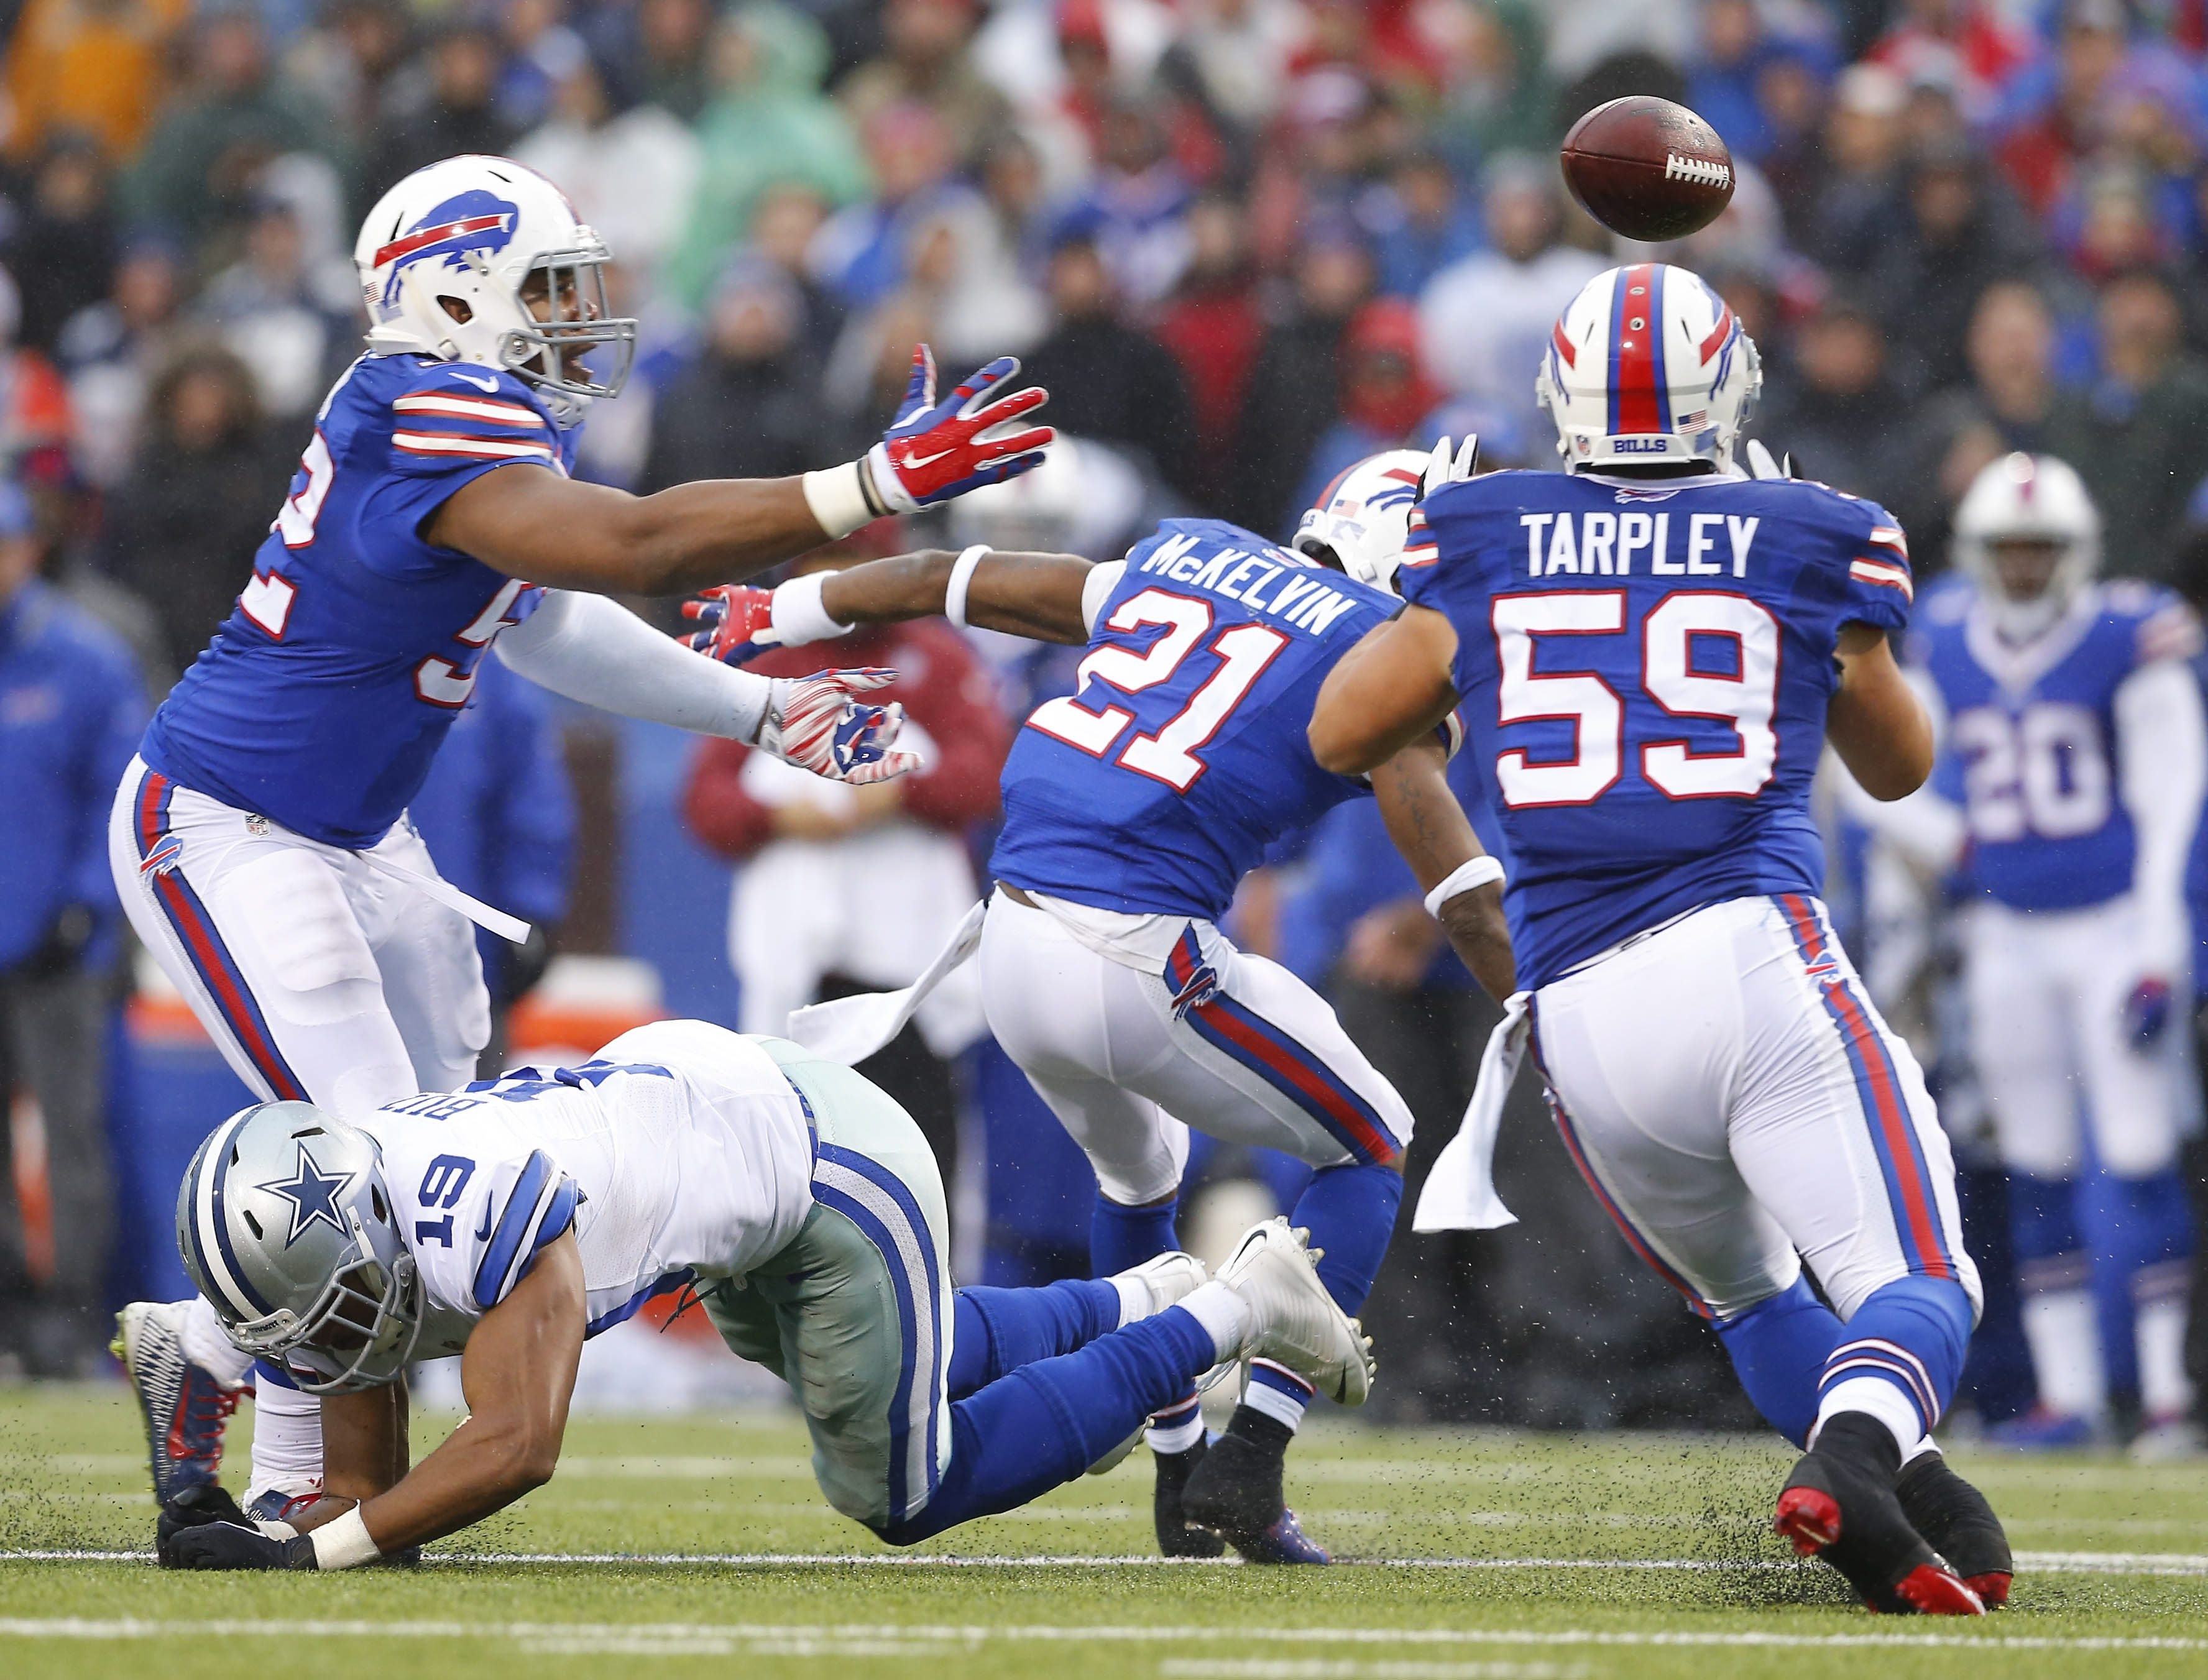 The Bills' AJ Tarpley intercepts a pass intended for the Cowboys' Brice Butler in the third quarter of the game in Orchard Park Sunday, December 27, 2015.  (Mark Mulville/Buffalo News)